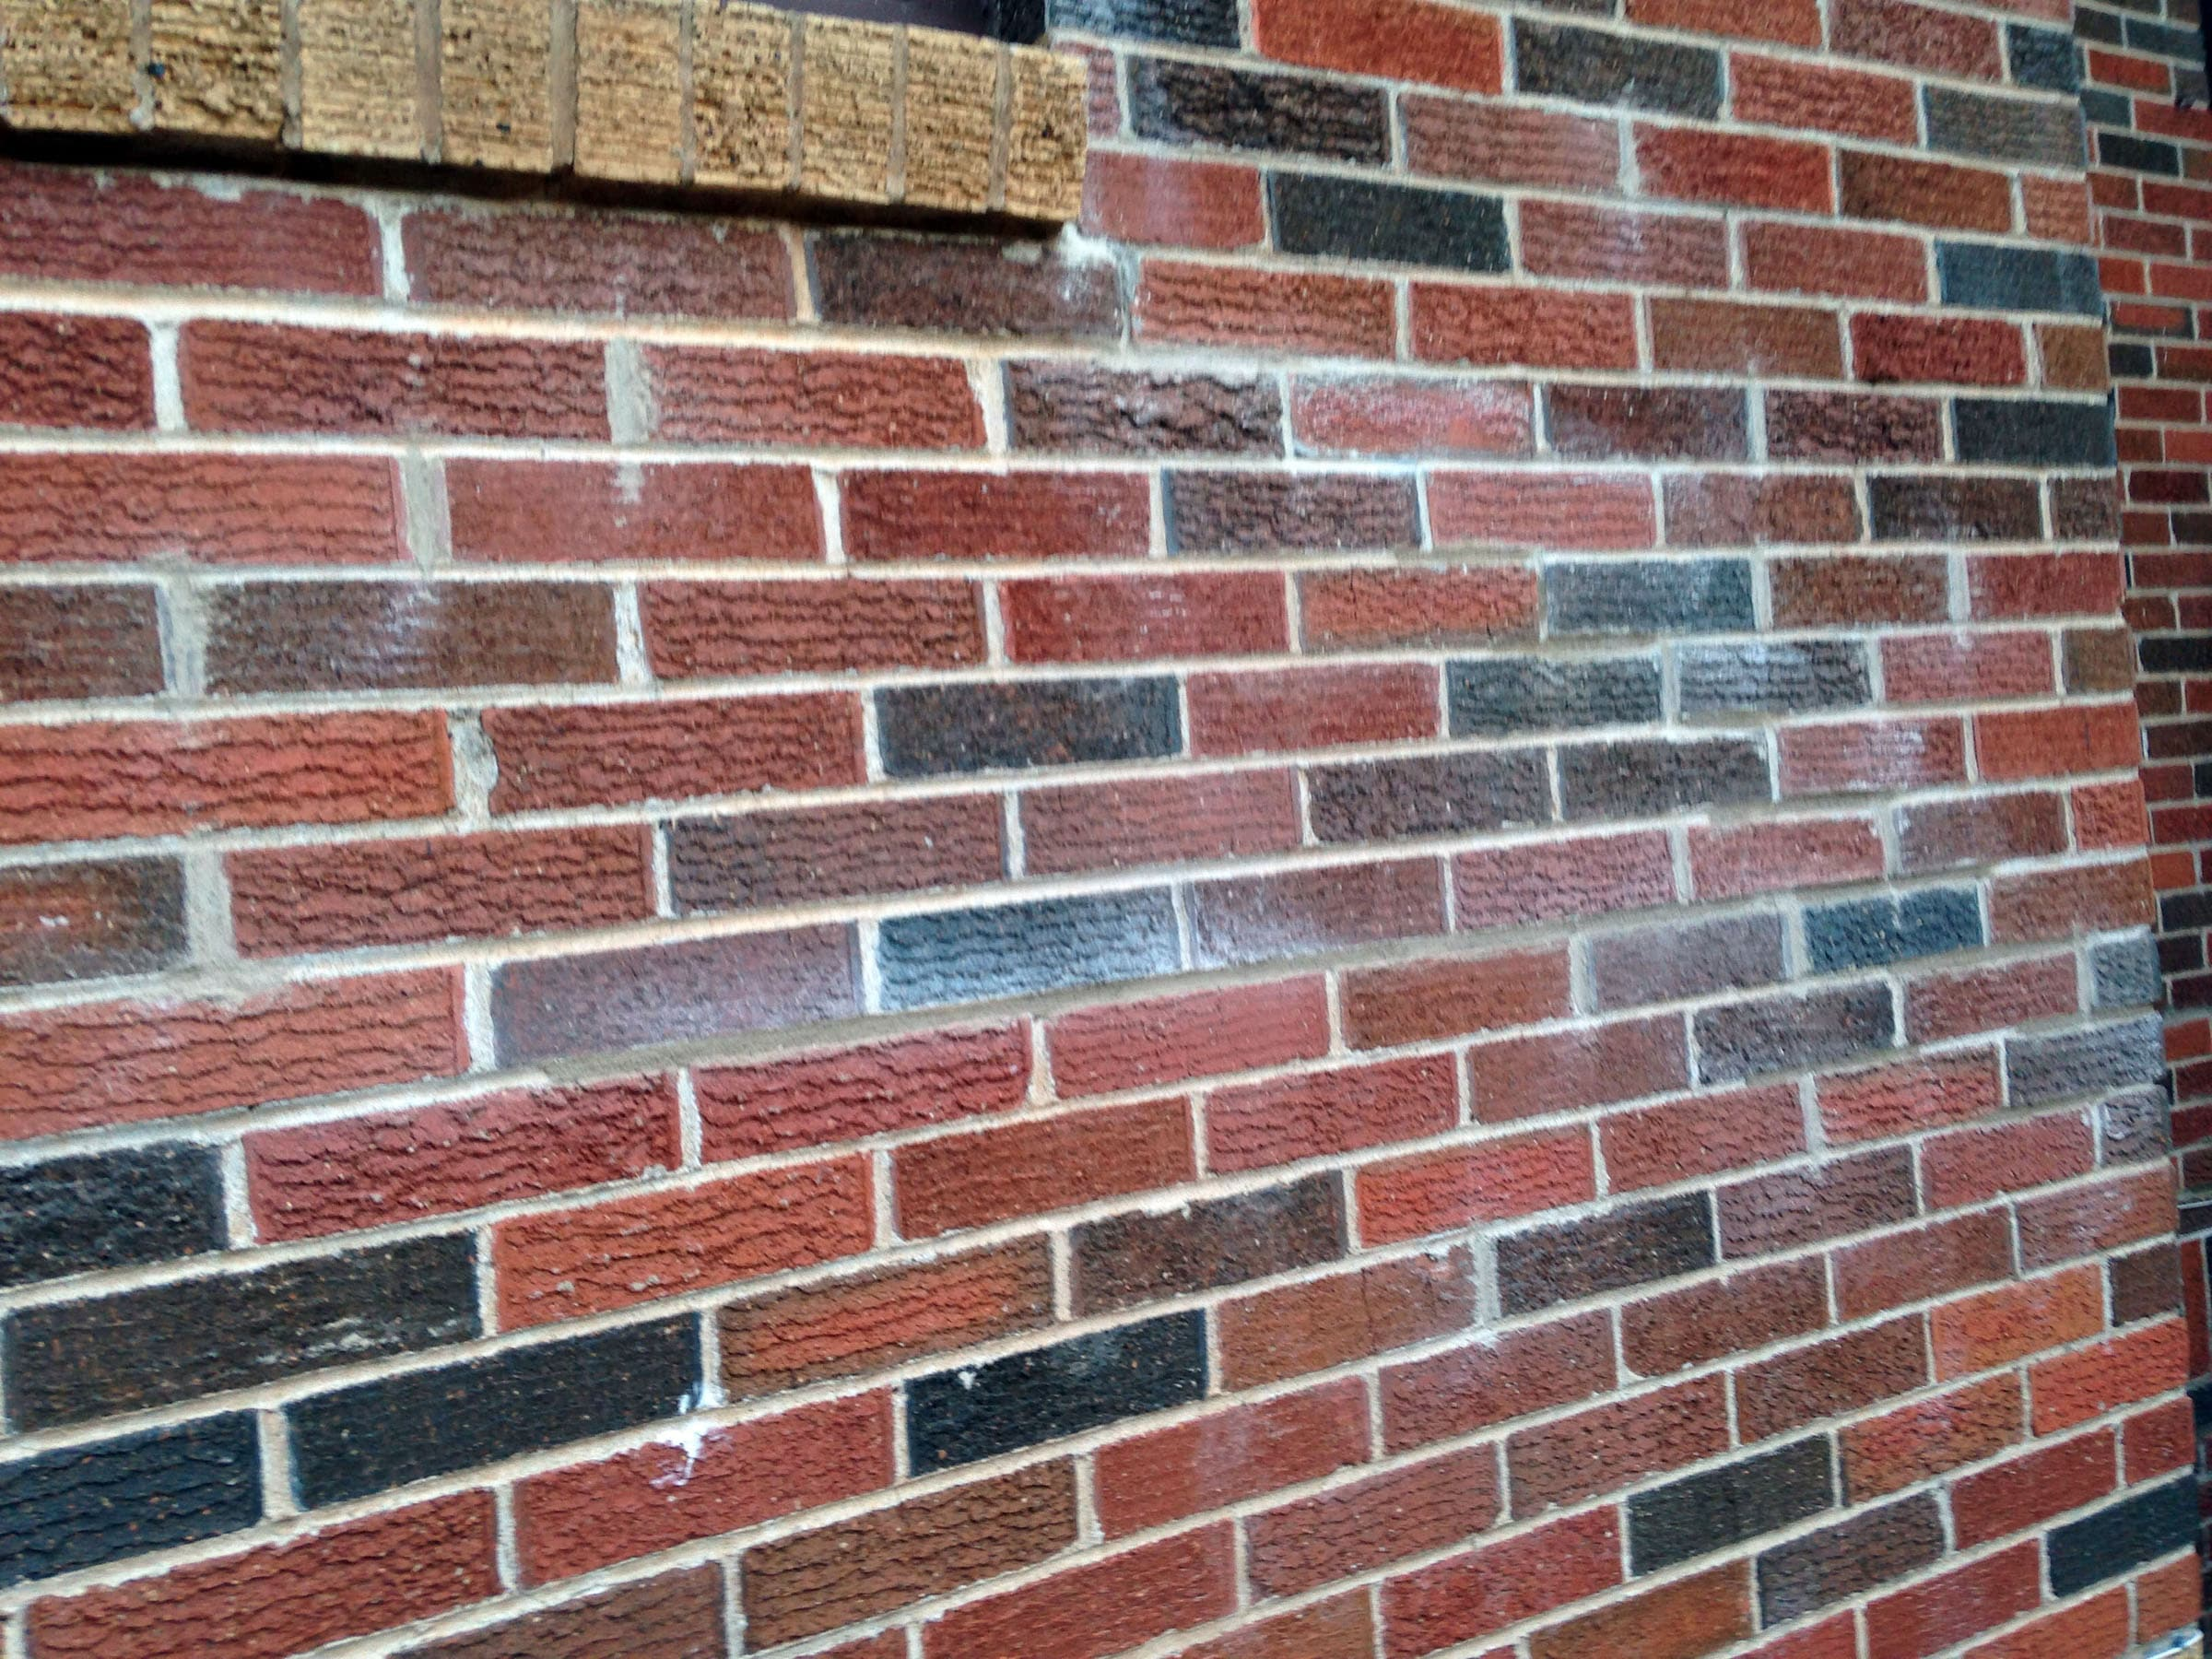 How To Clean Up Mortar Stains On Brick